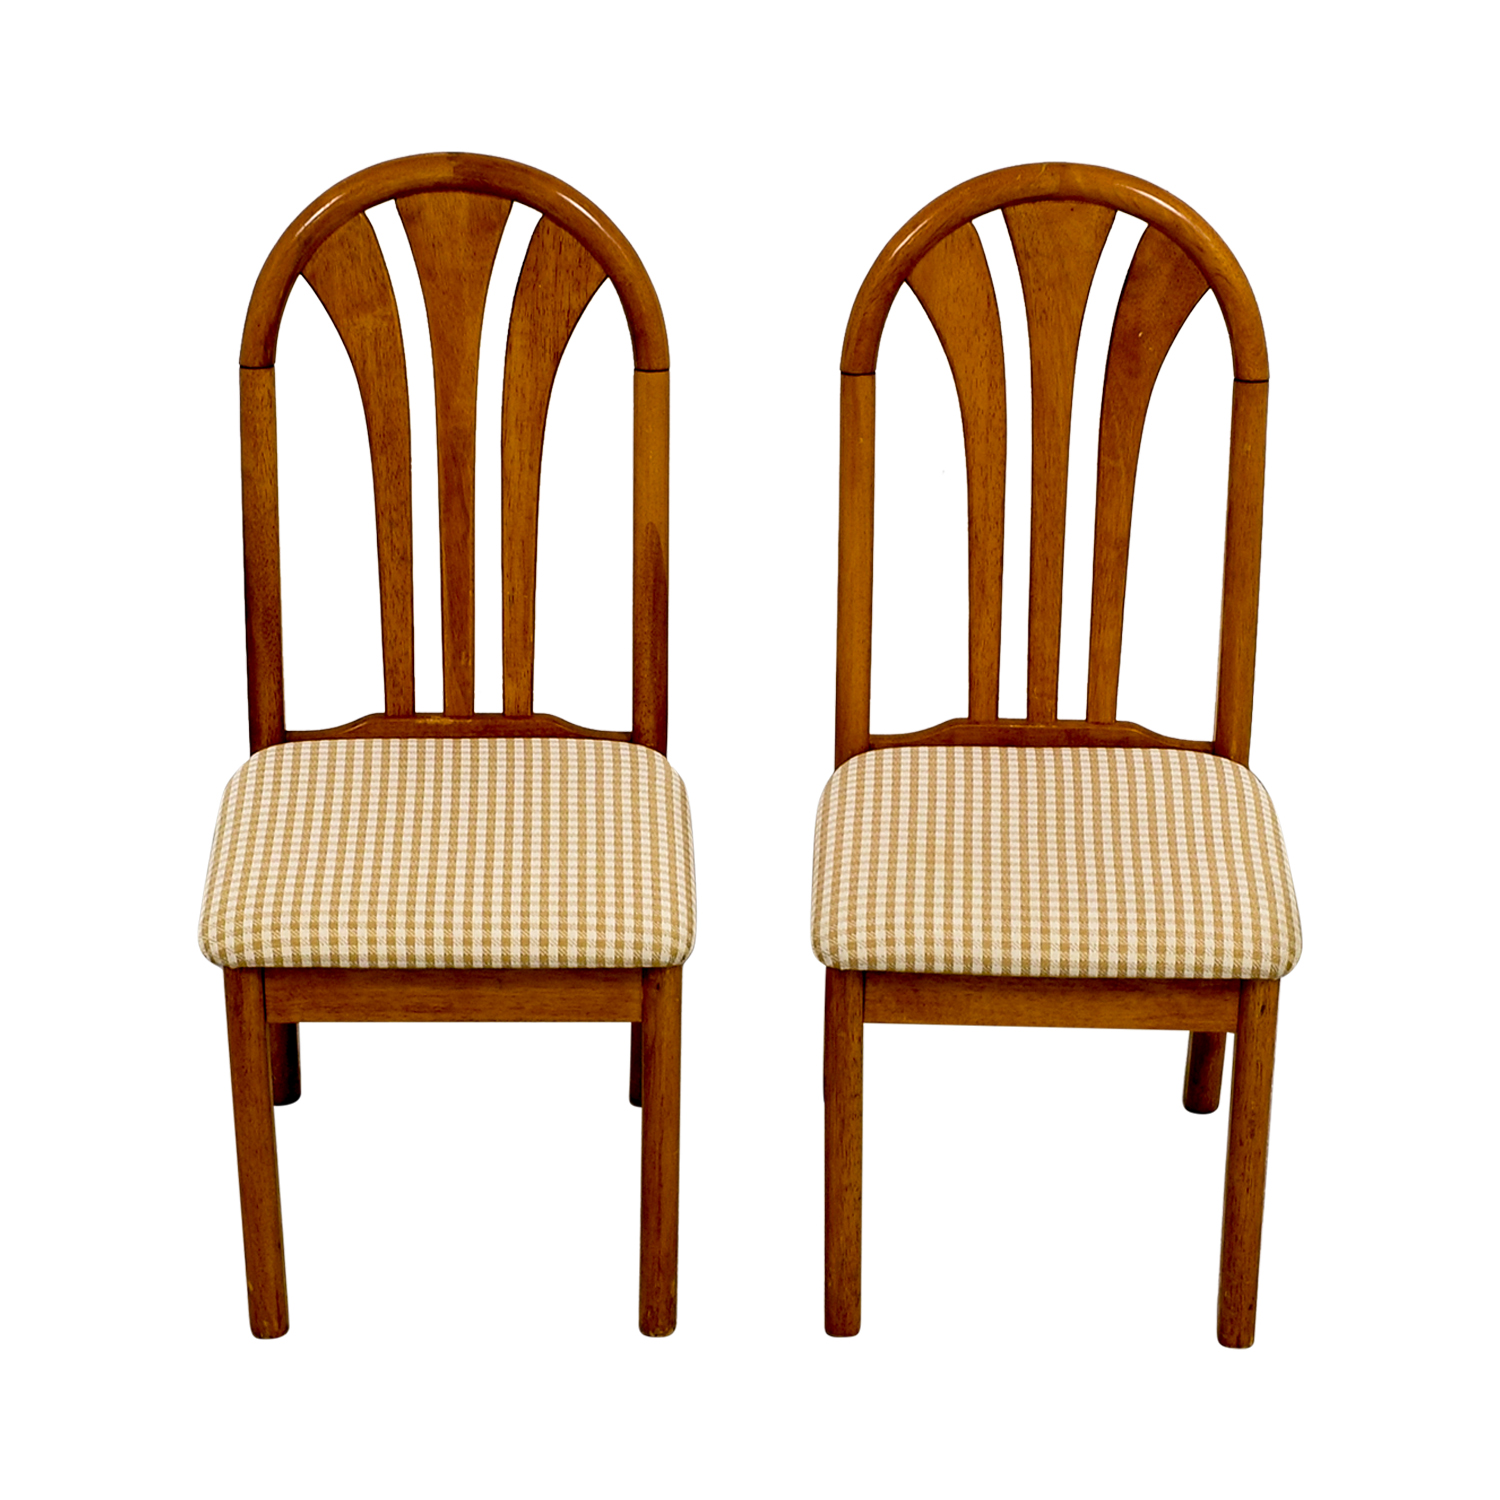 Gingham Chair 85 Off Gingham Upholstered Wood Chairs Chairs